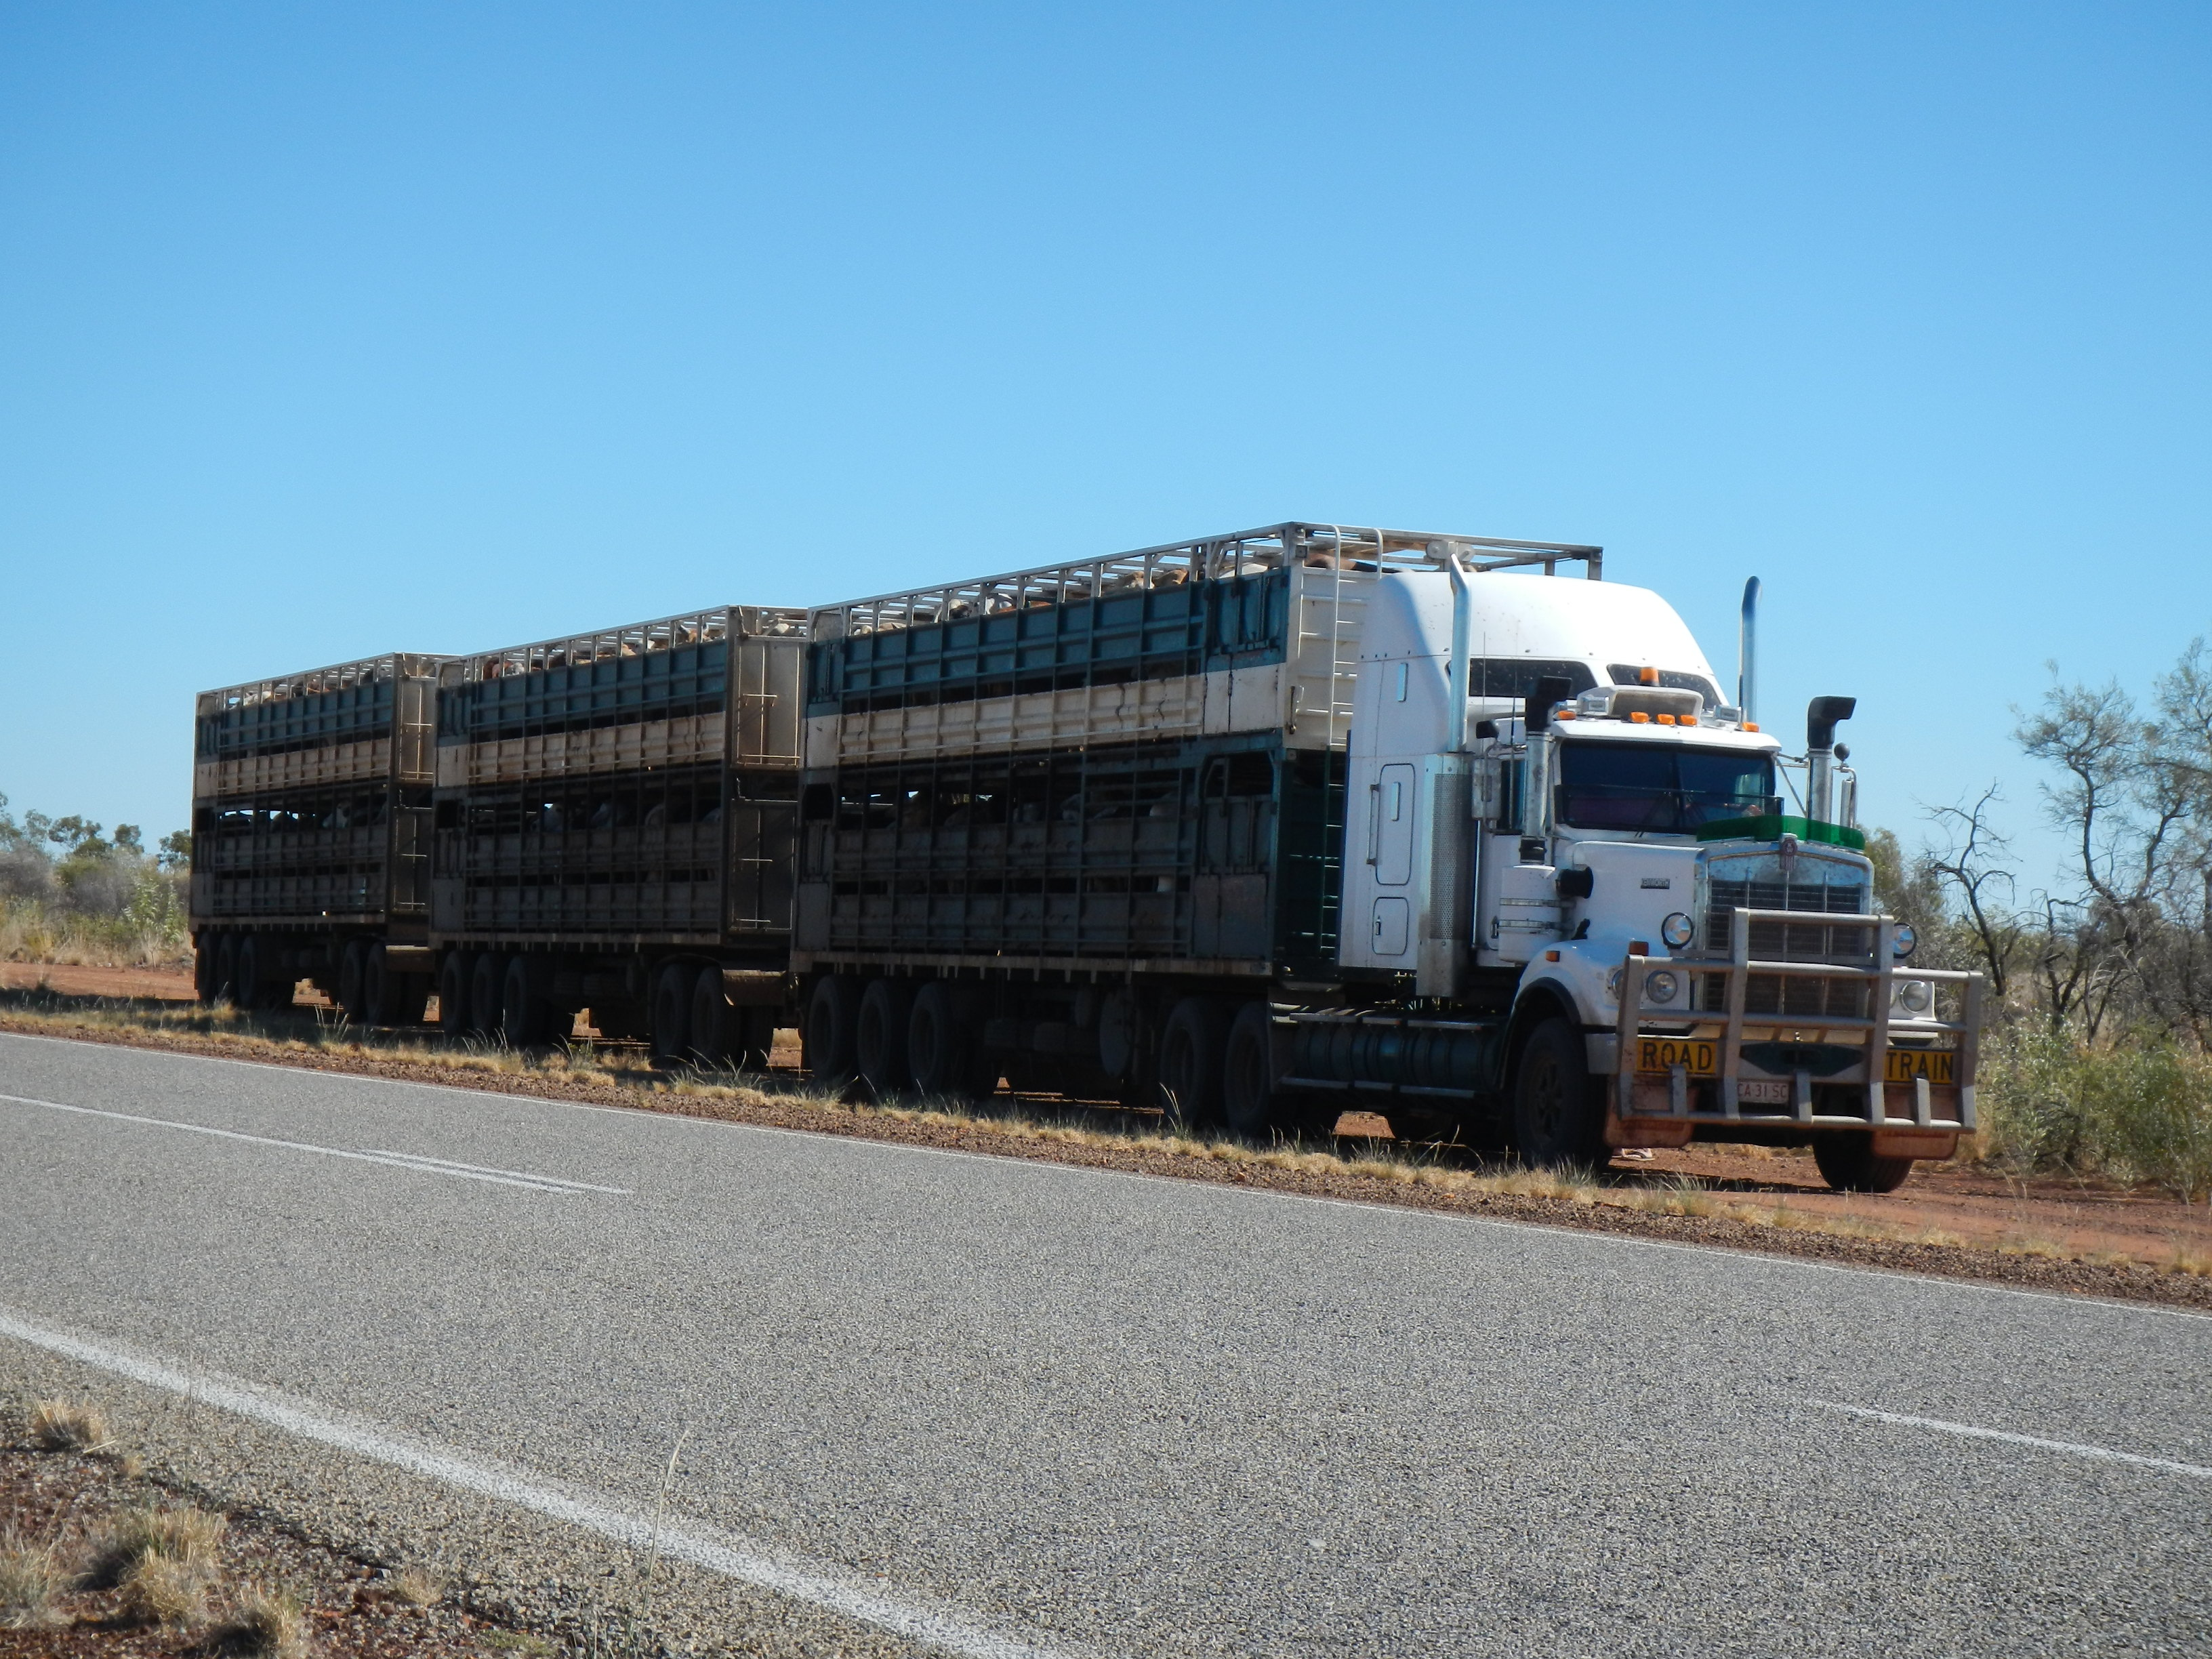 Cattle Truck in the Northern Territory